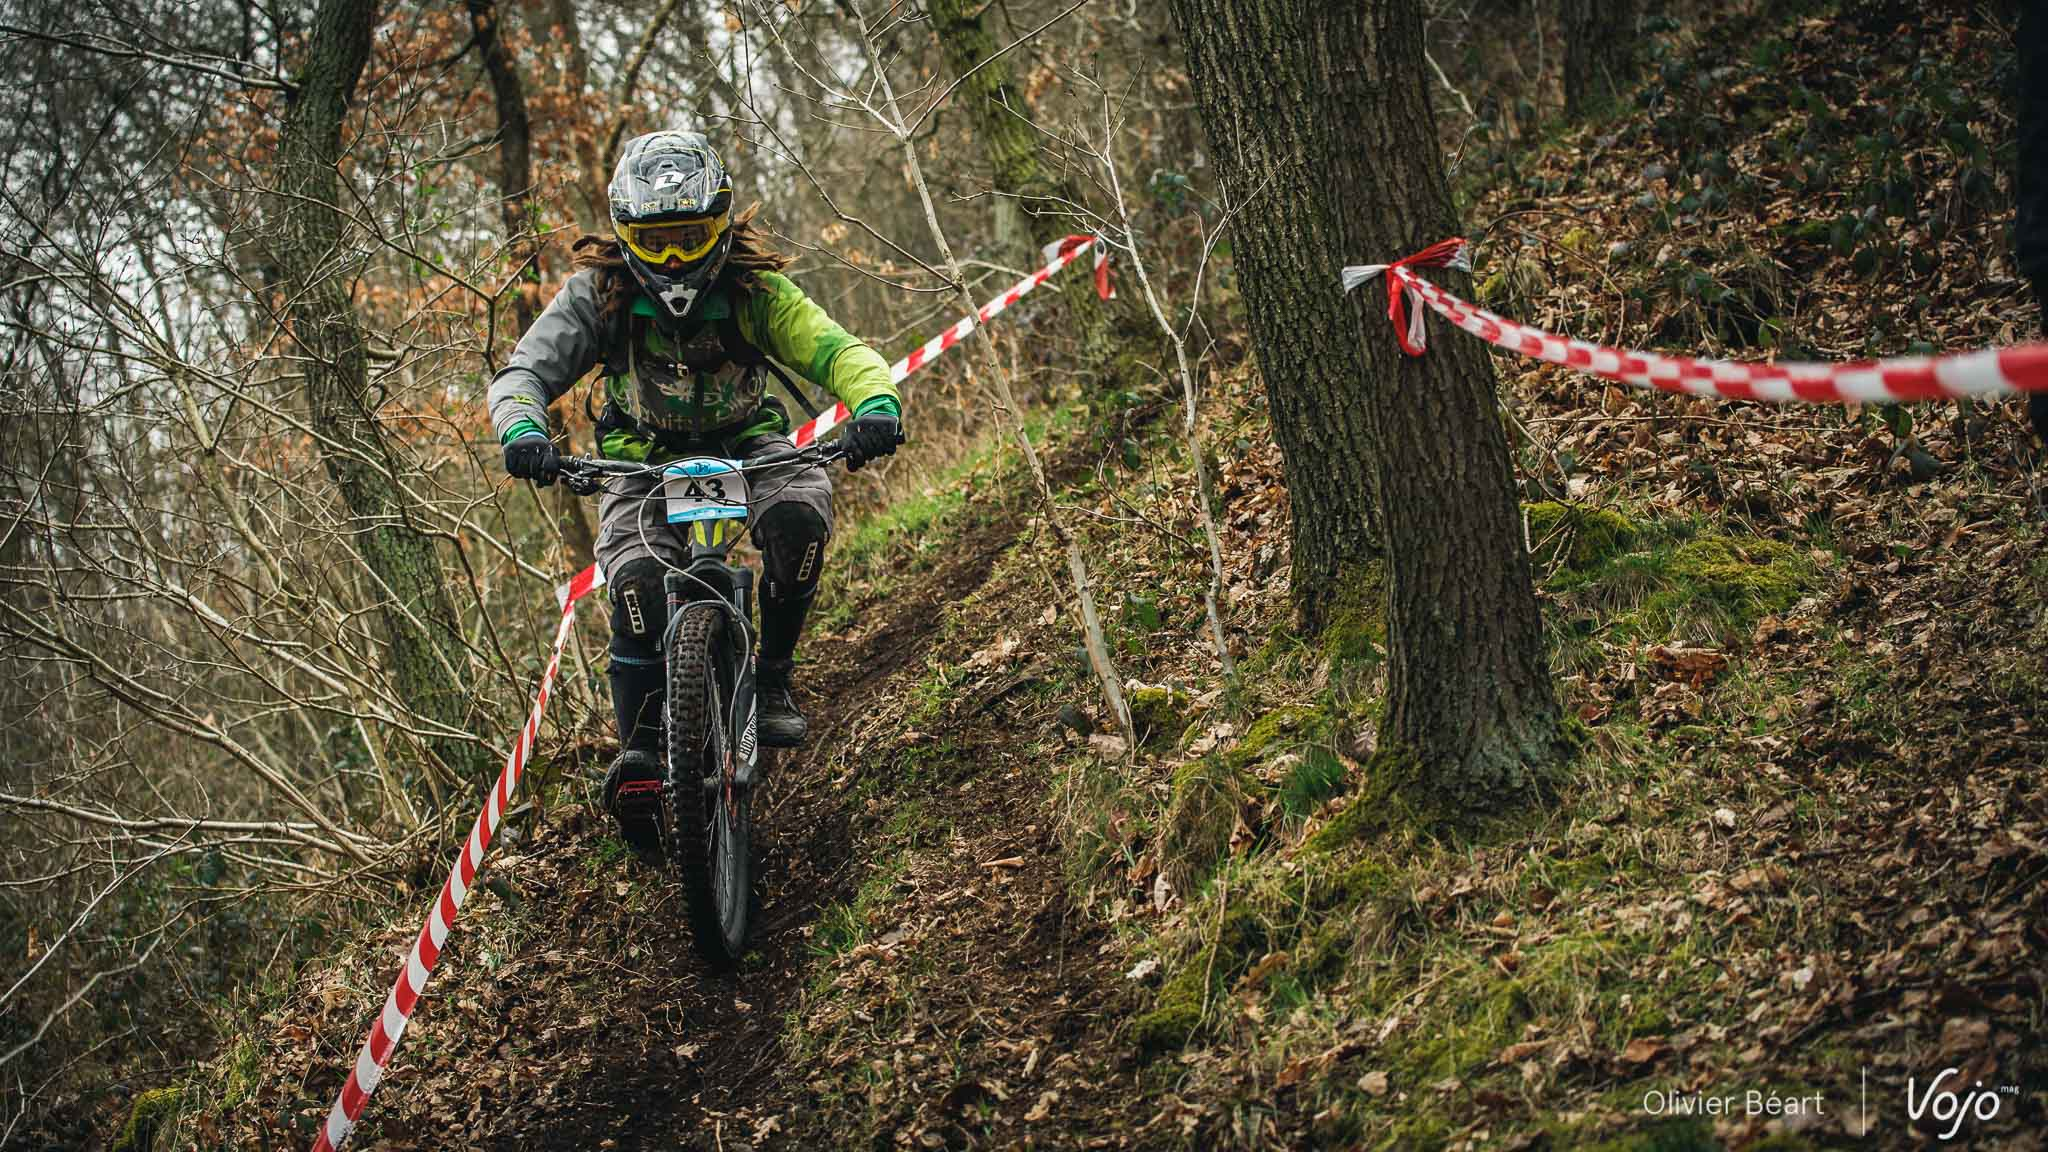 Belgian_Enduro_Cup_Chaudfontaine_2016_Copyright_OBeart_Vojomag-23